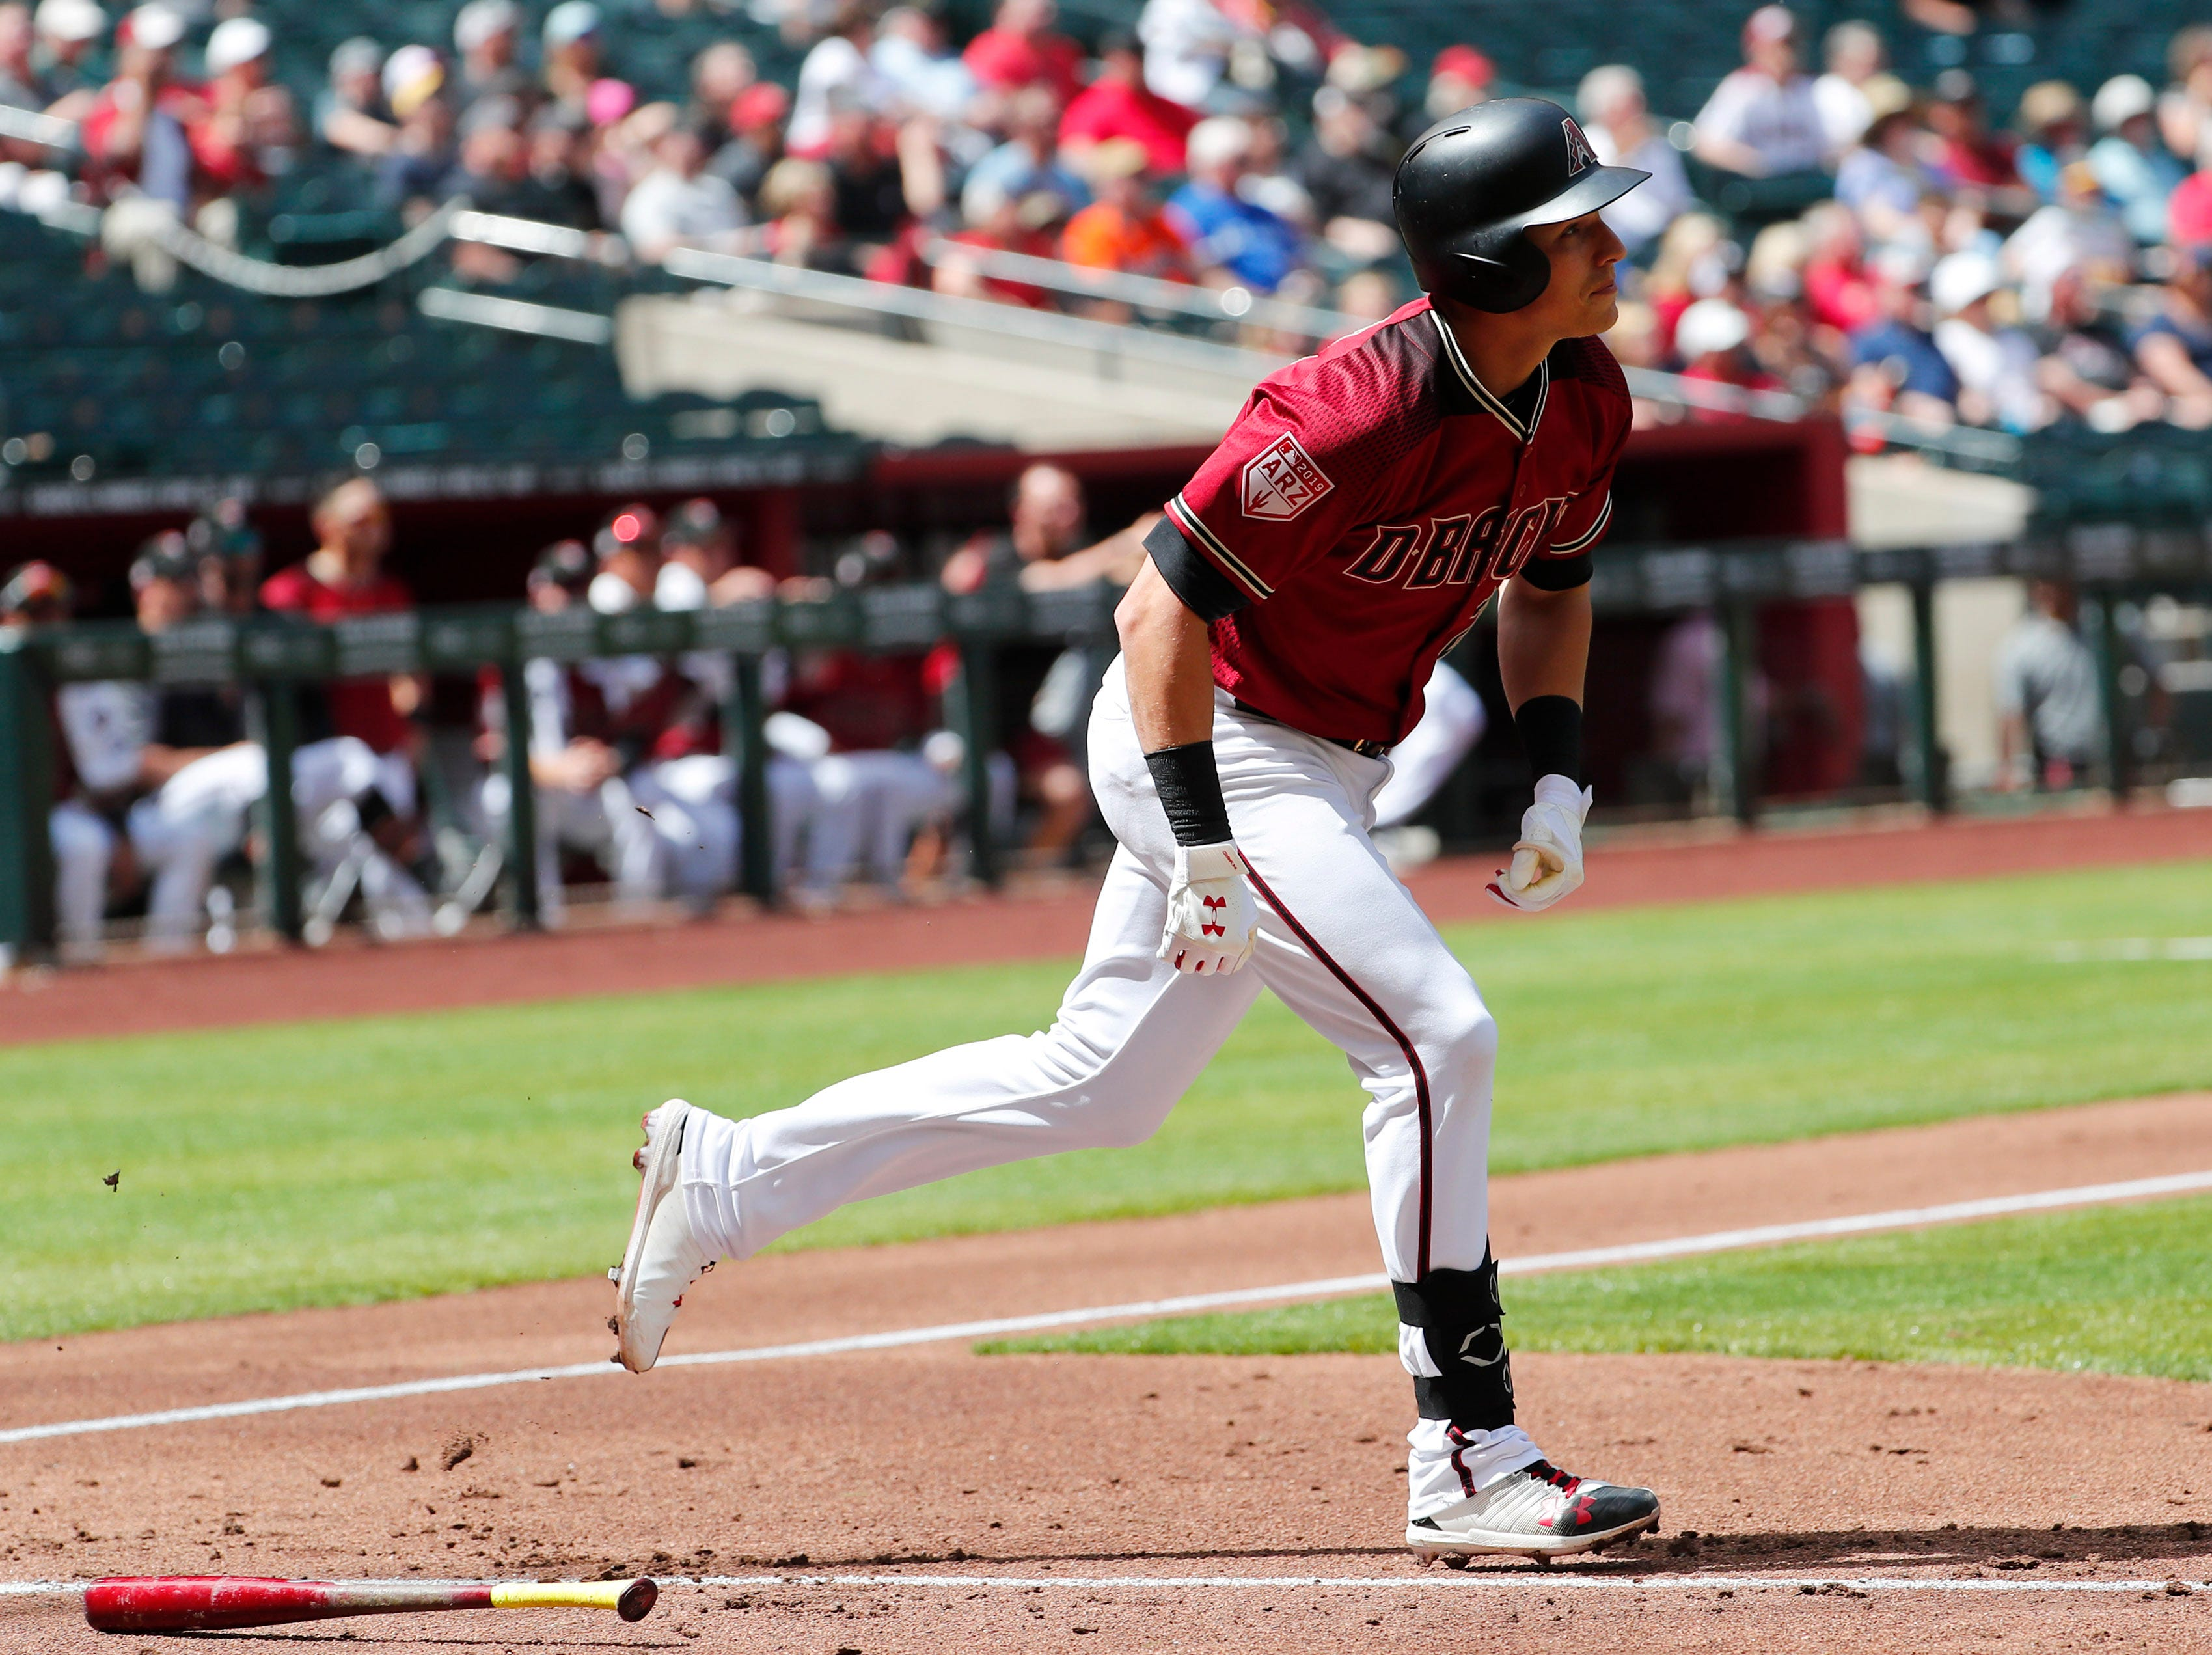 Arizona Diamondbacks first baseman Jake Lamb (22) hits a home run against the Chicago White Sox during spring training action at Chase Field March 26, 2019.